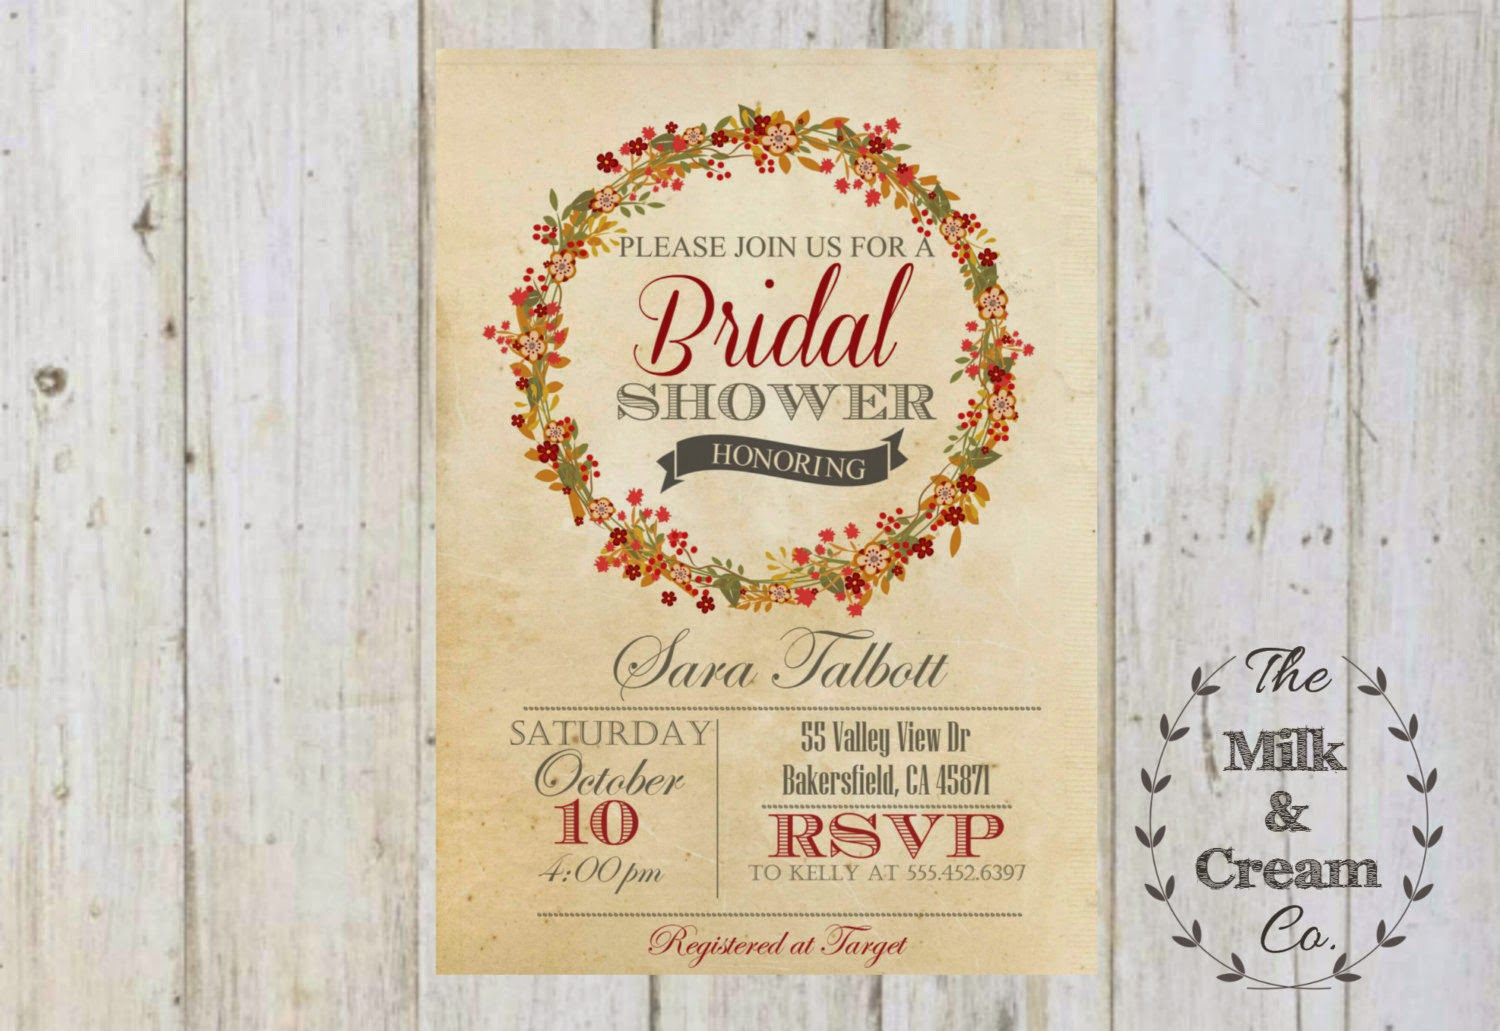 https://www.etsy.com/listing/207009590/rustic-fall-wreath-bridal-shower-invite?ref=shop_home_active_18